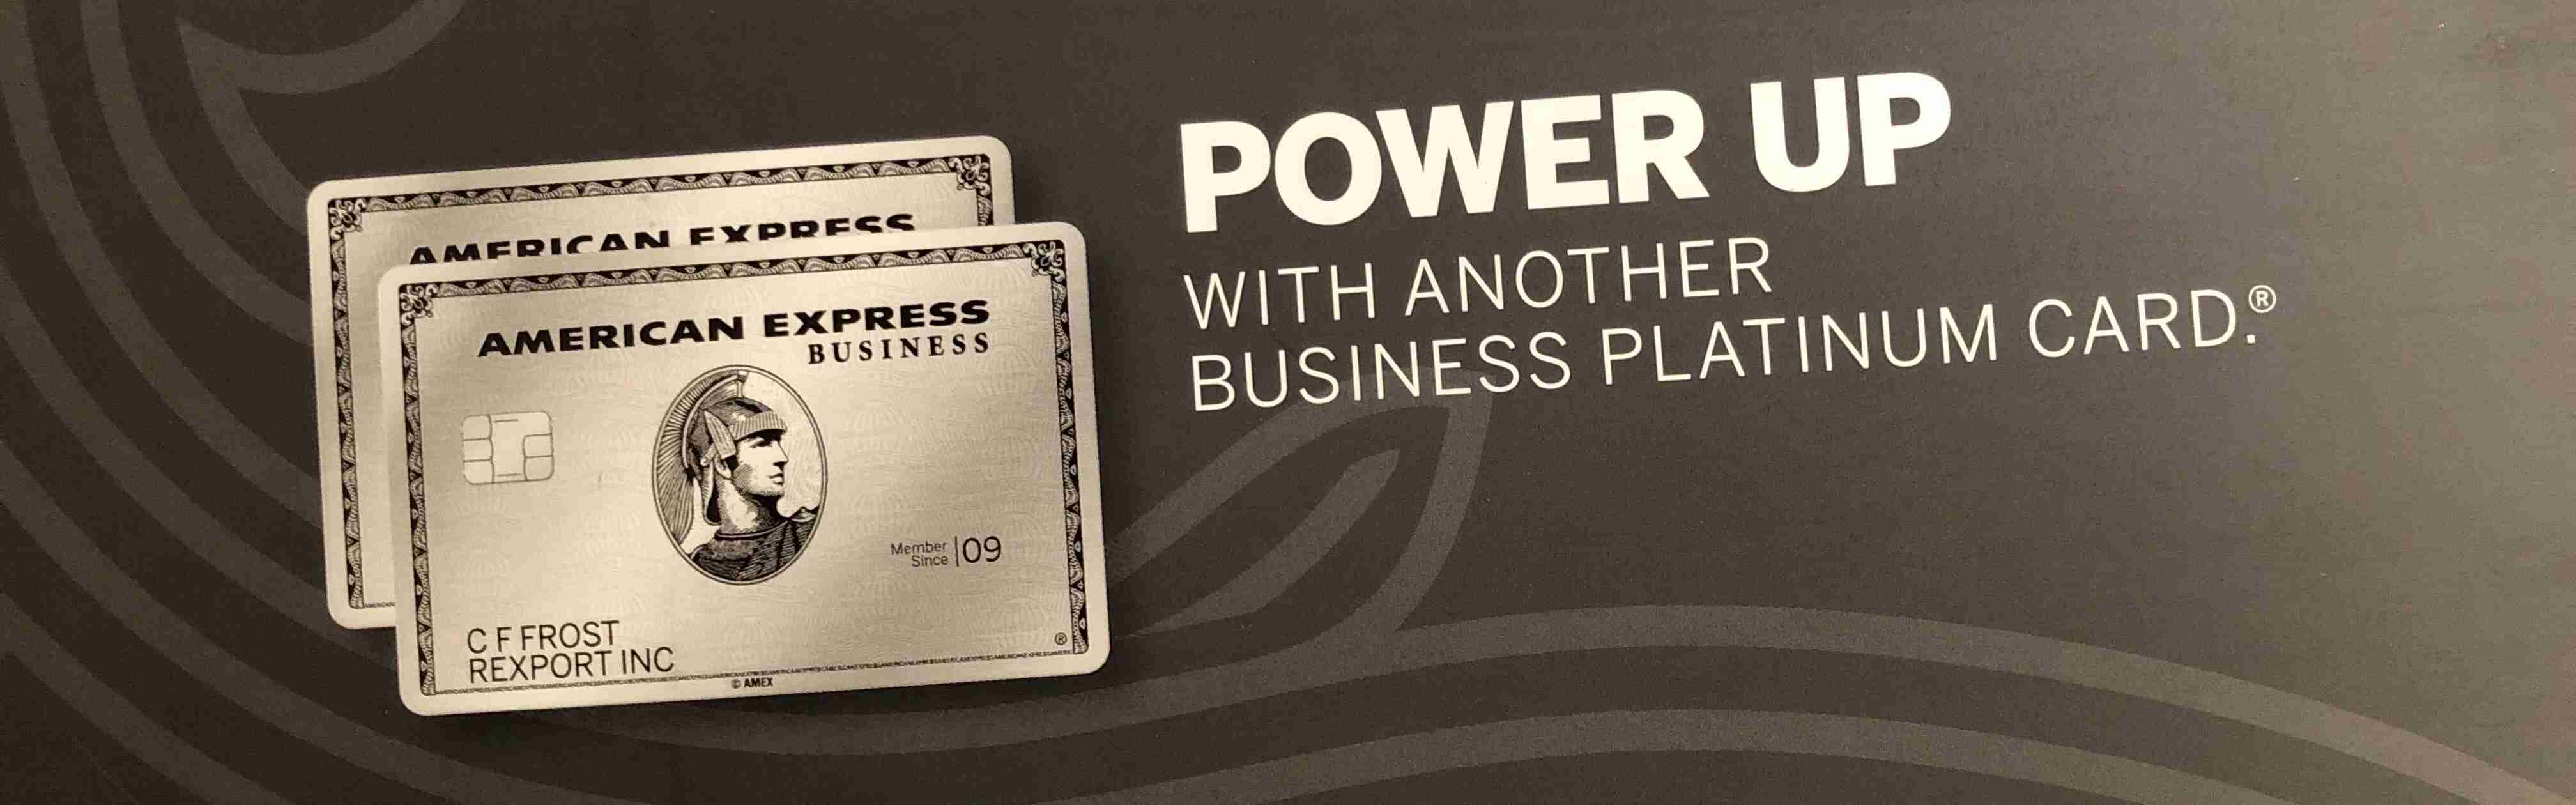 american express business platinum second card